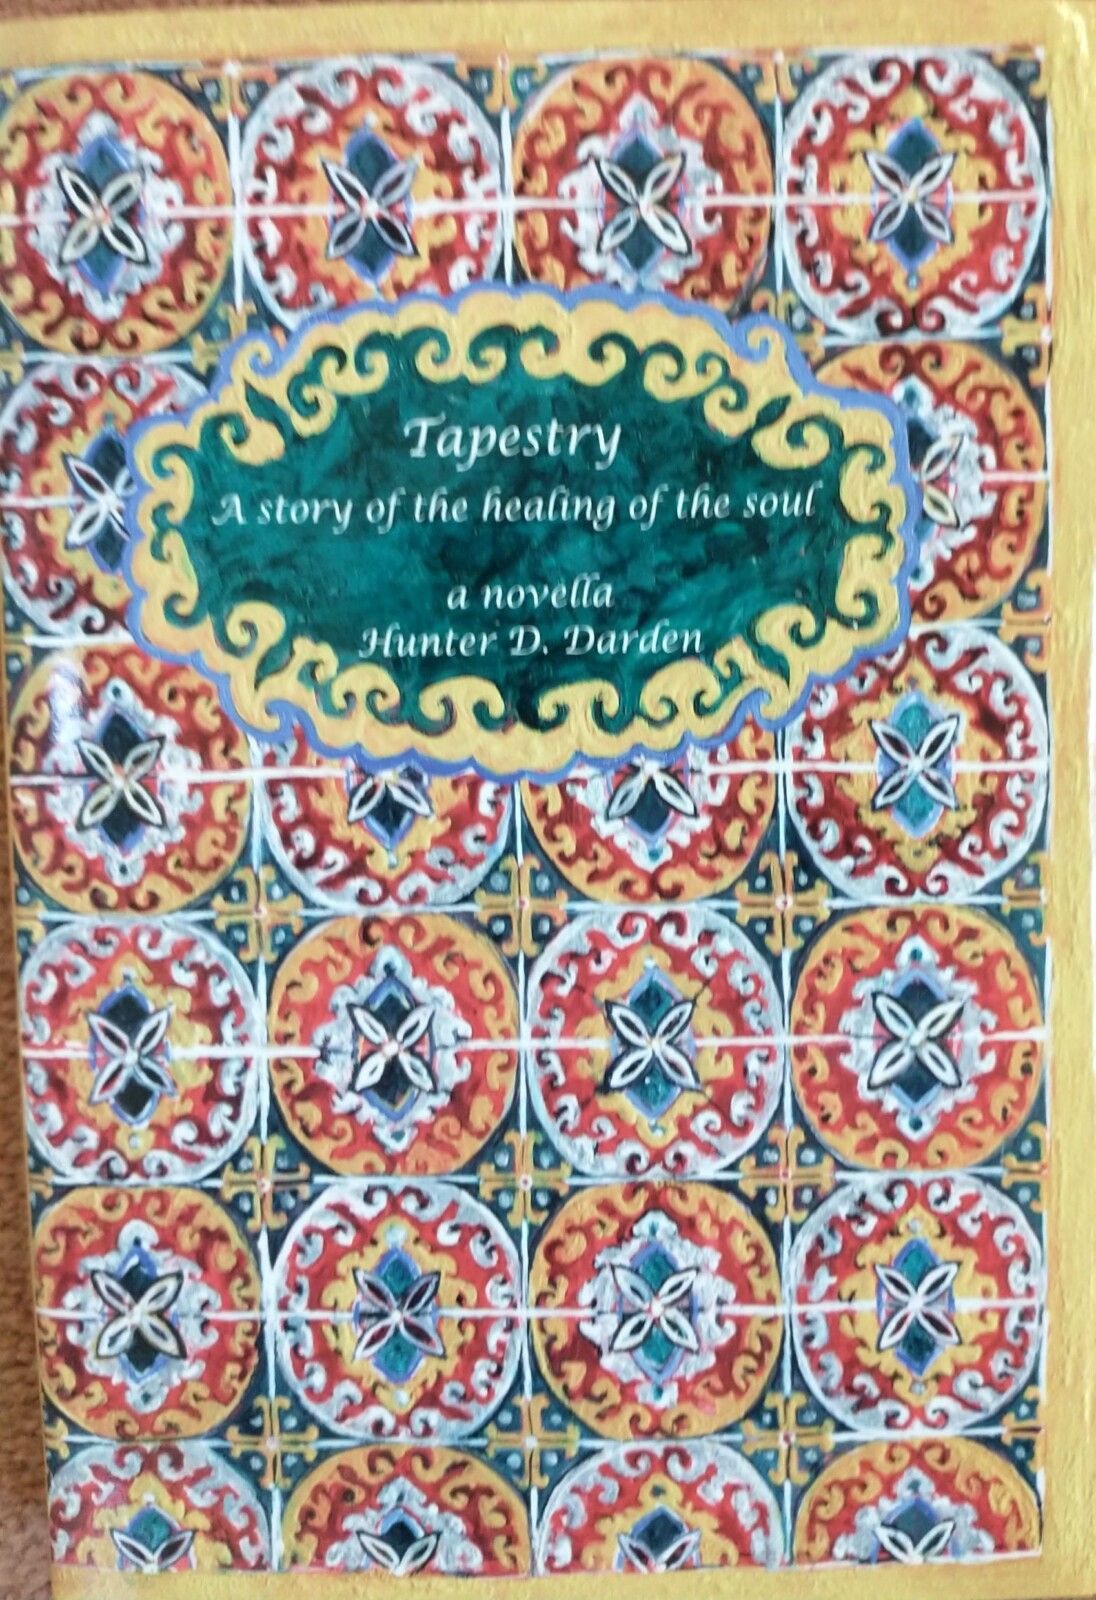 Tapestry: A story of the healing of the soul